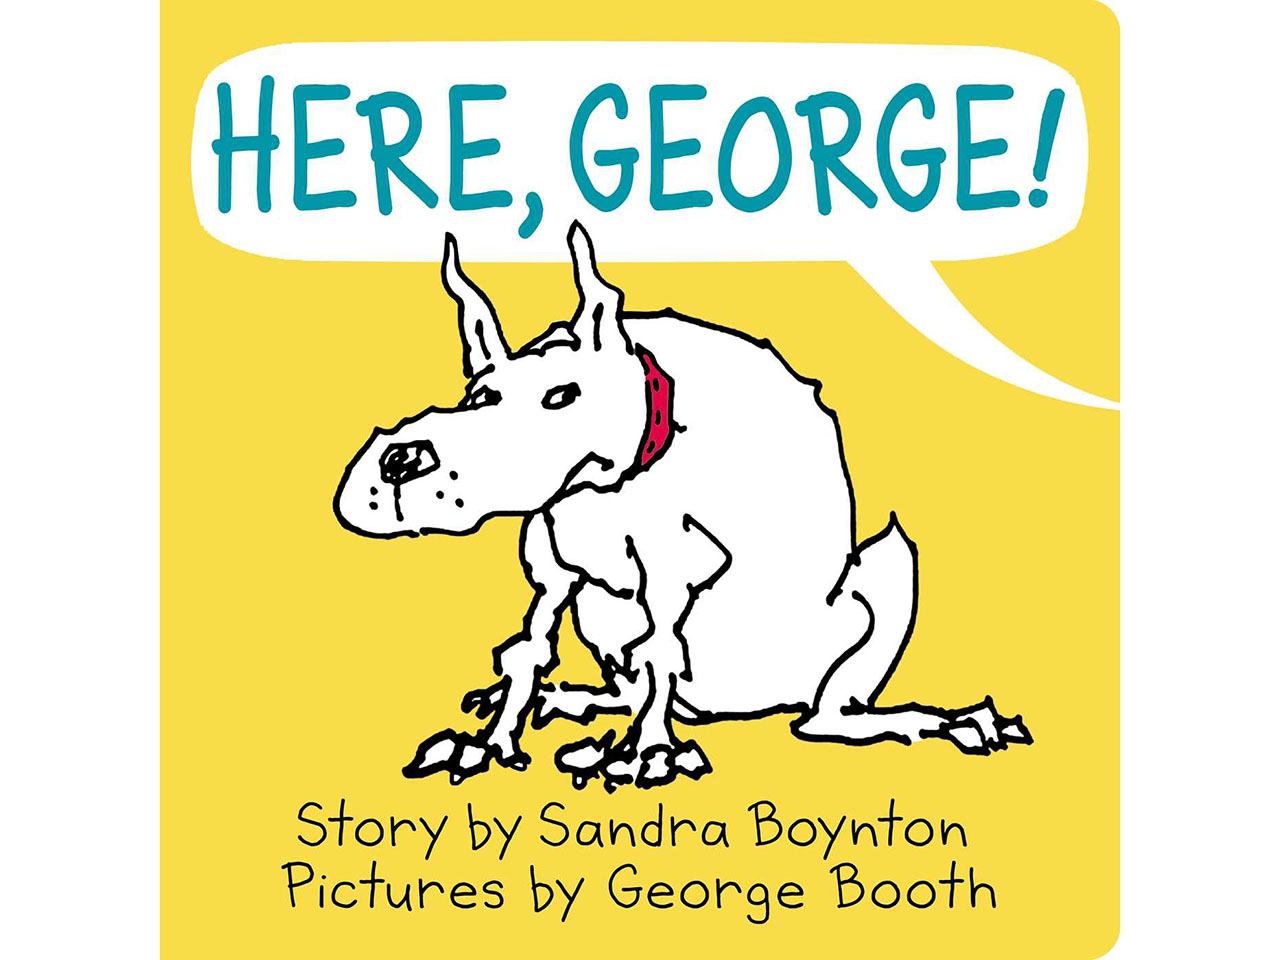 Here, George book cover